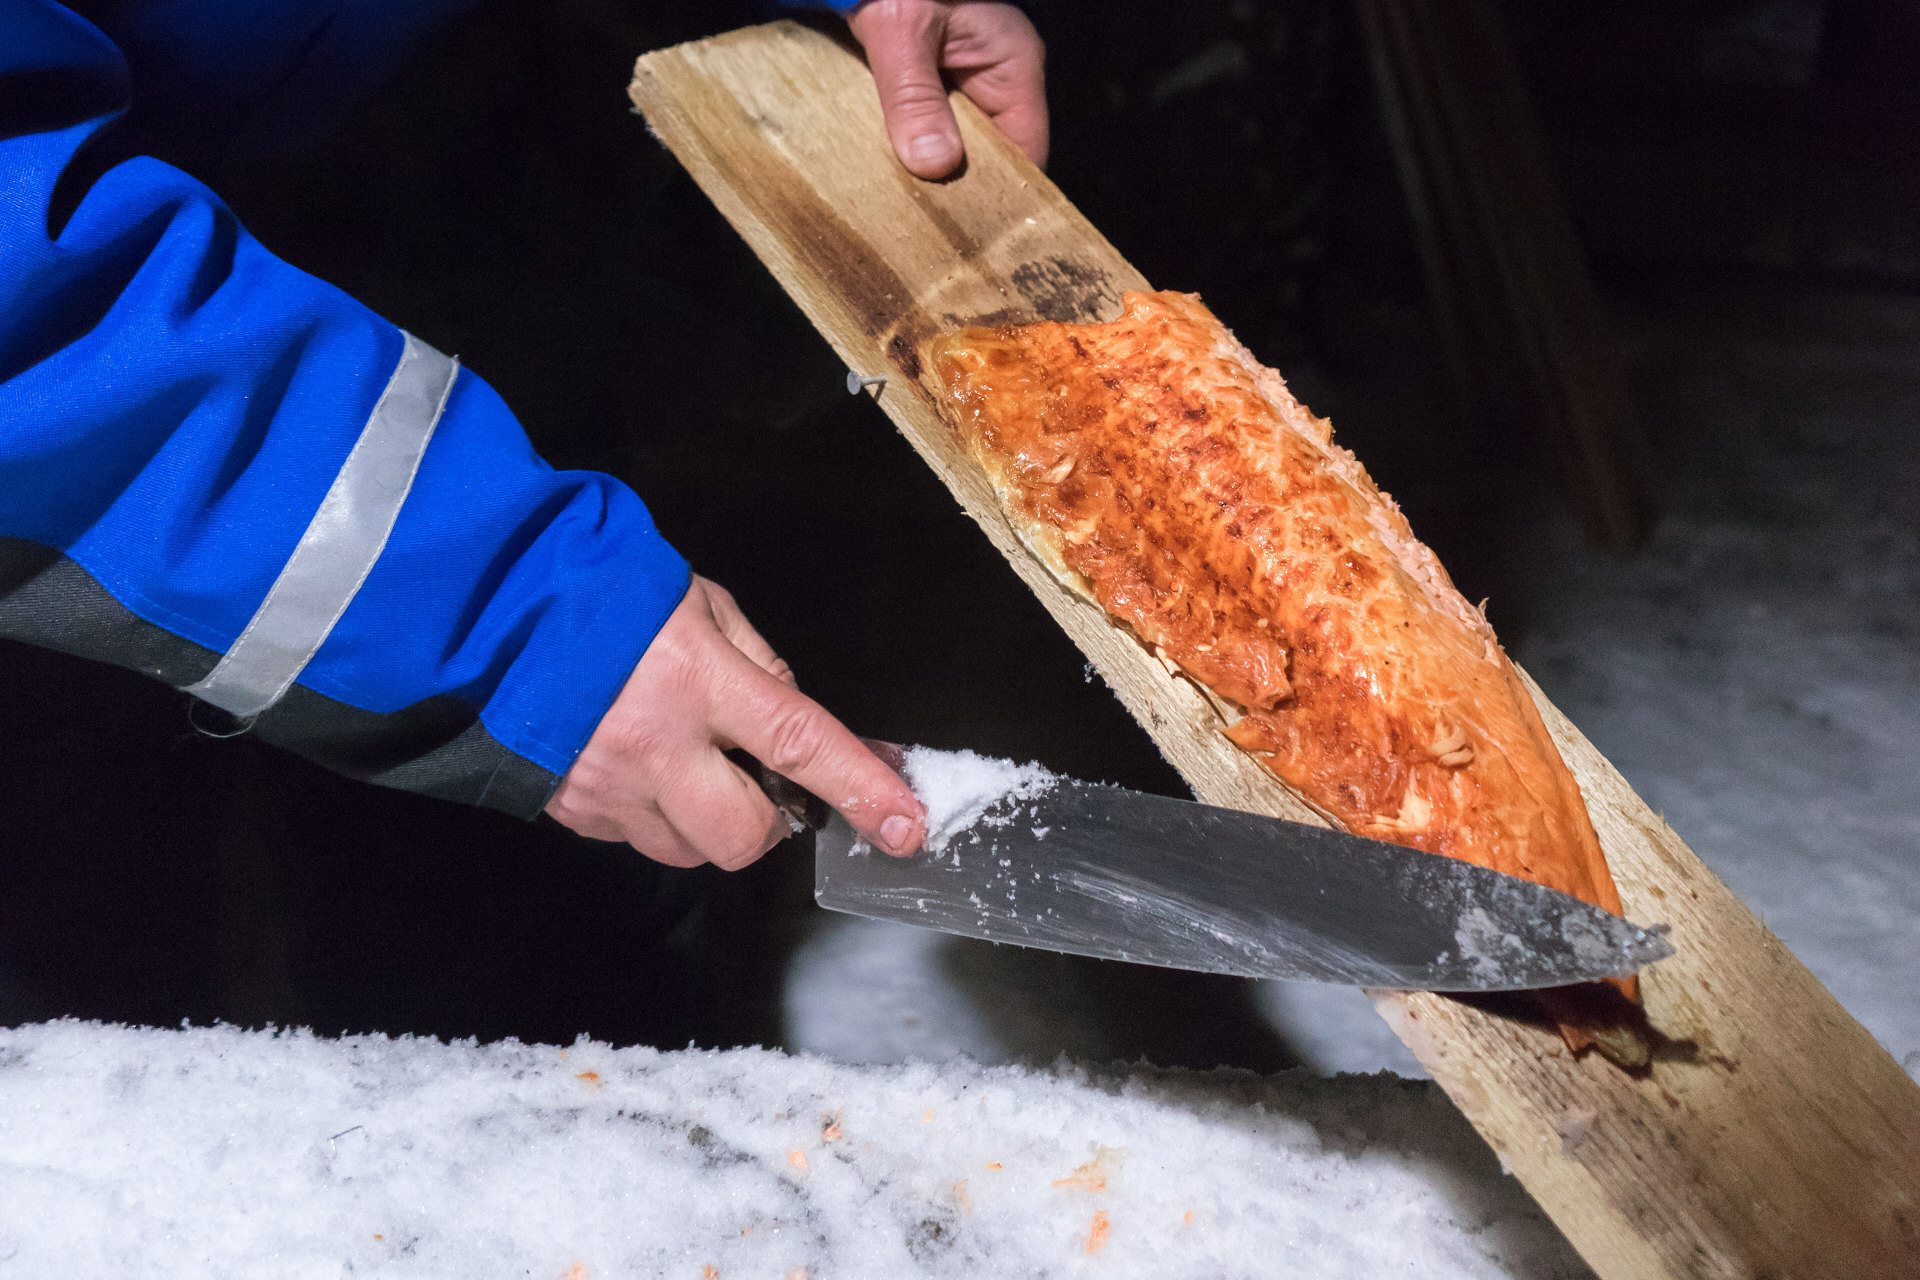 Video + Photos: Slow Food in Finland